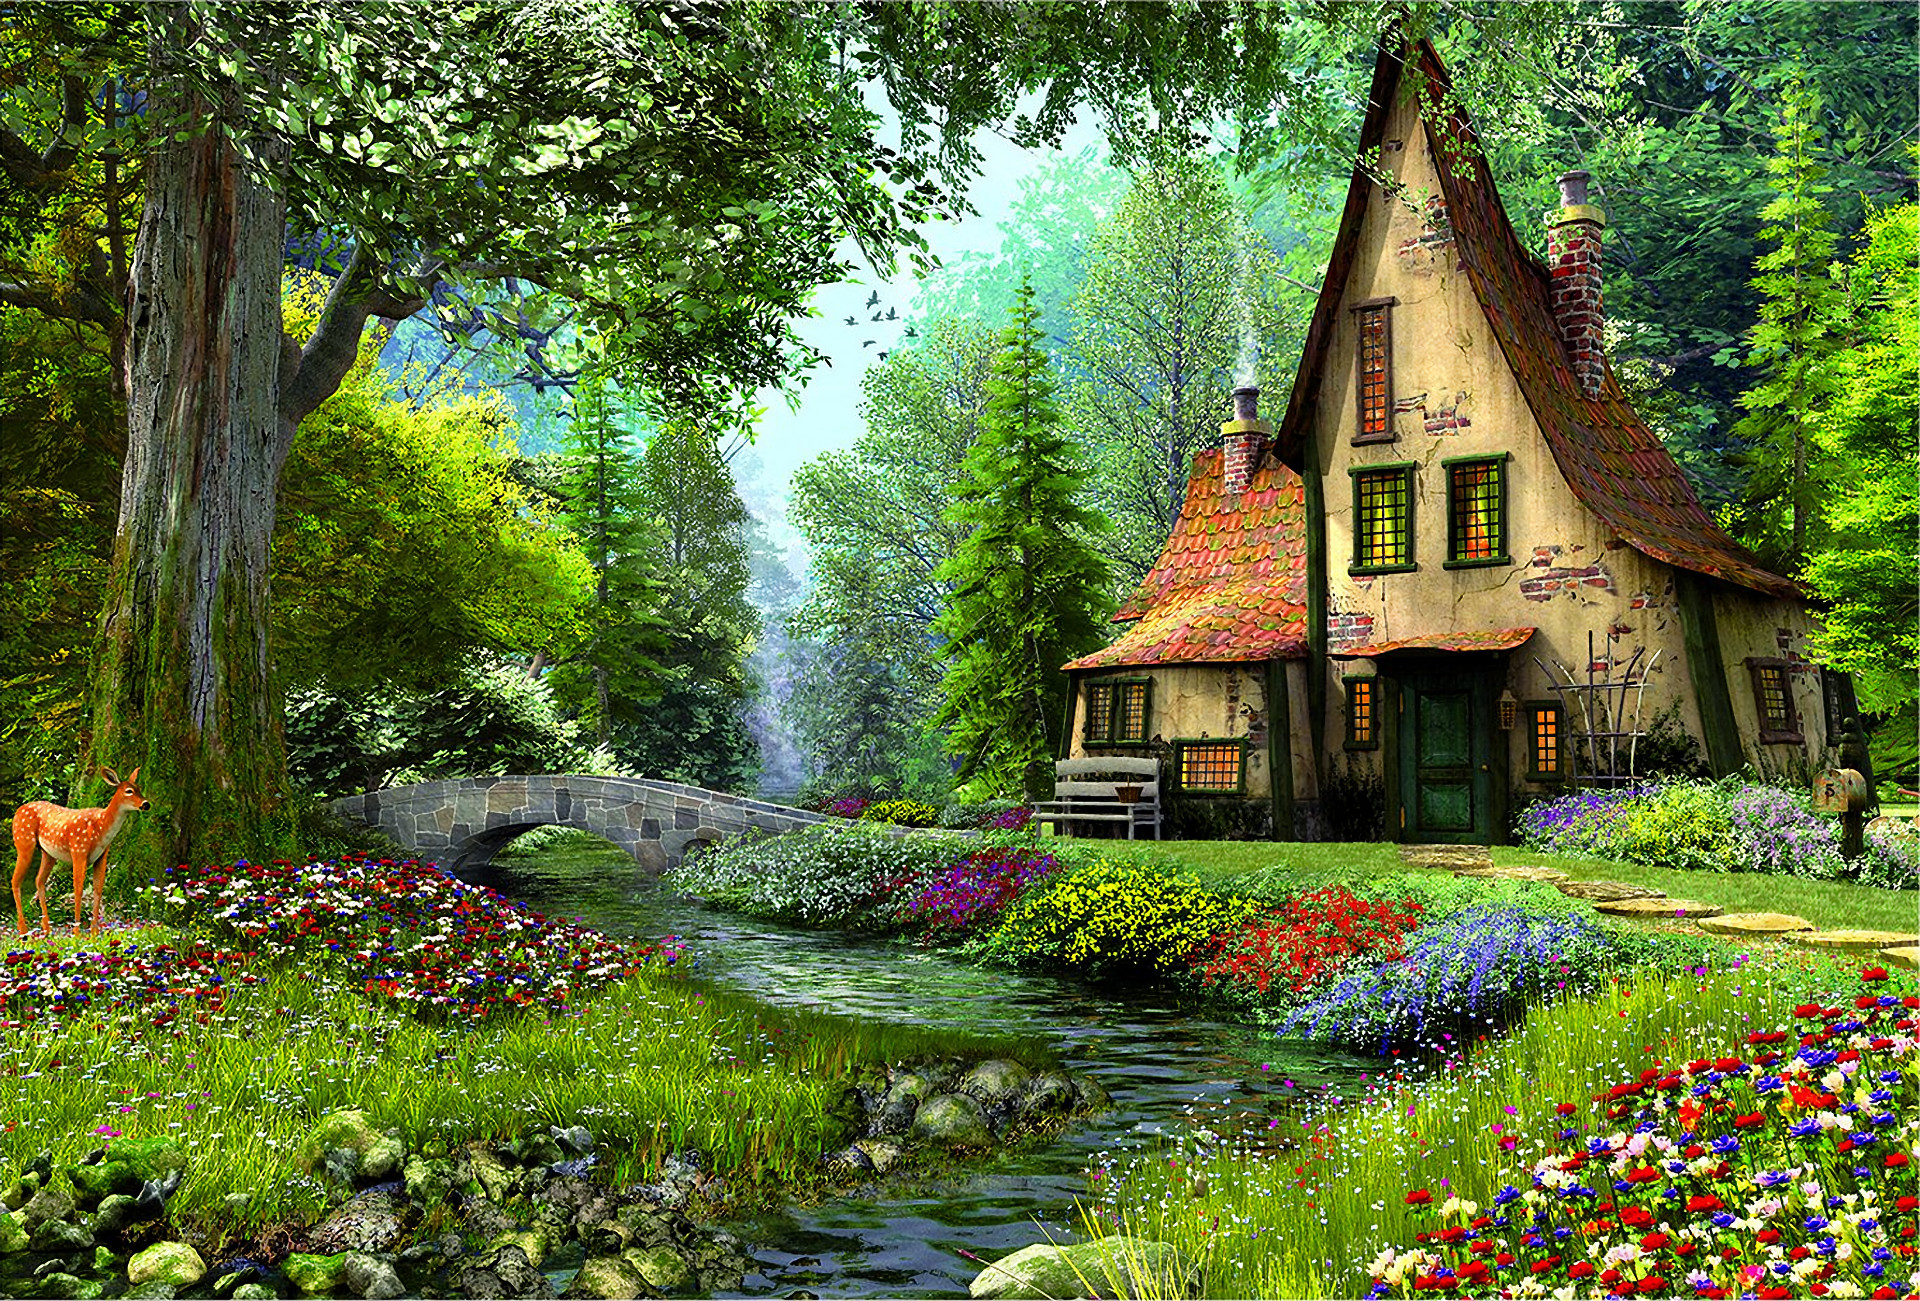 1920x1301 Artistic - Painting Artistic House Fairy Tale Magical Flower Tree Spring  Deer Bridge River Wallpaper